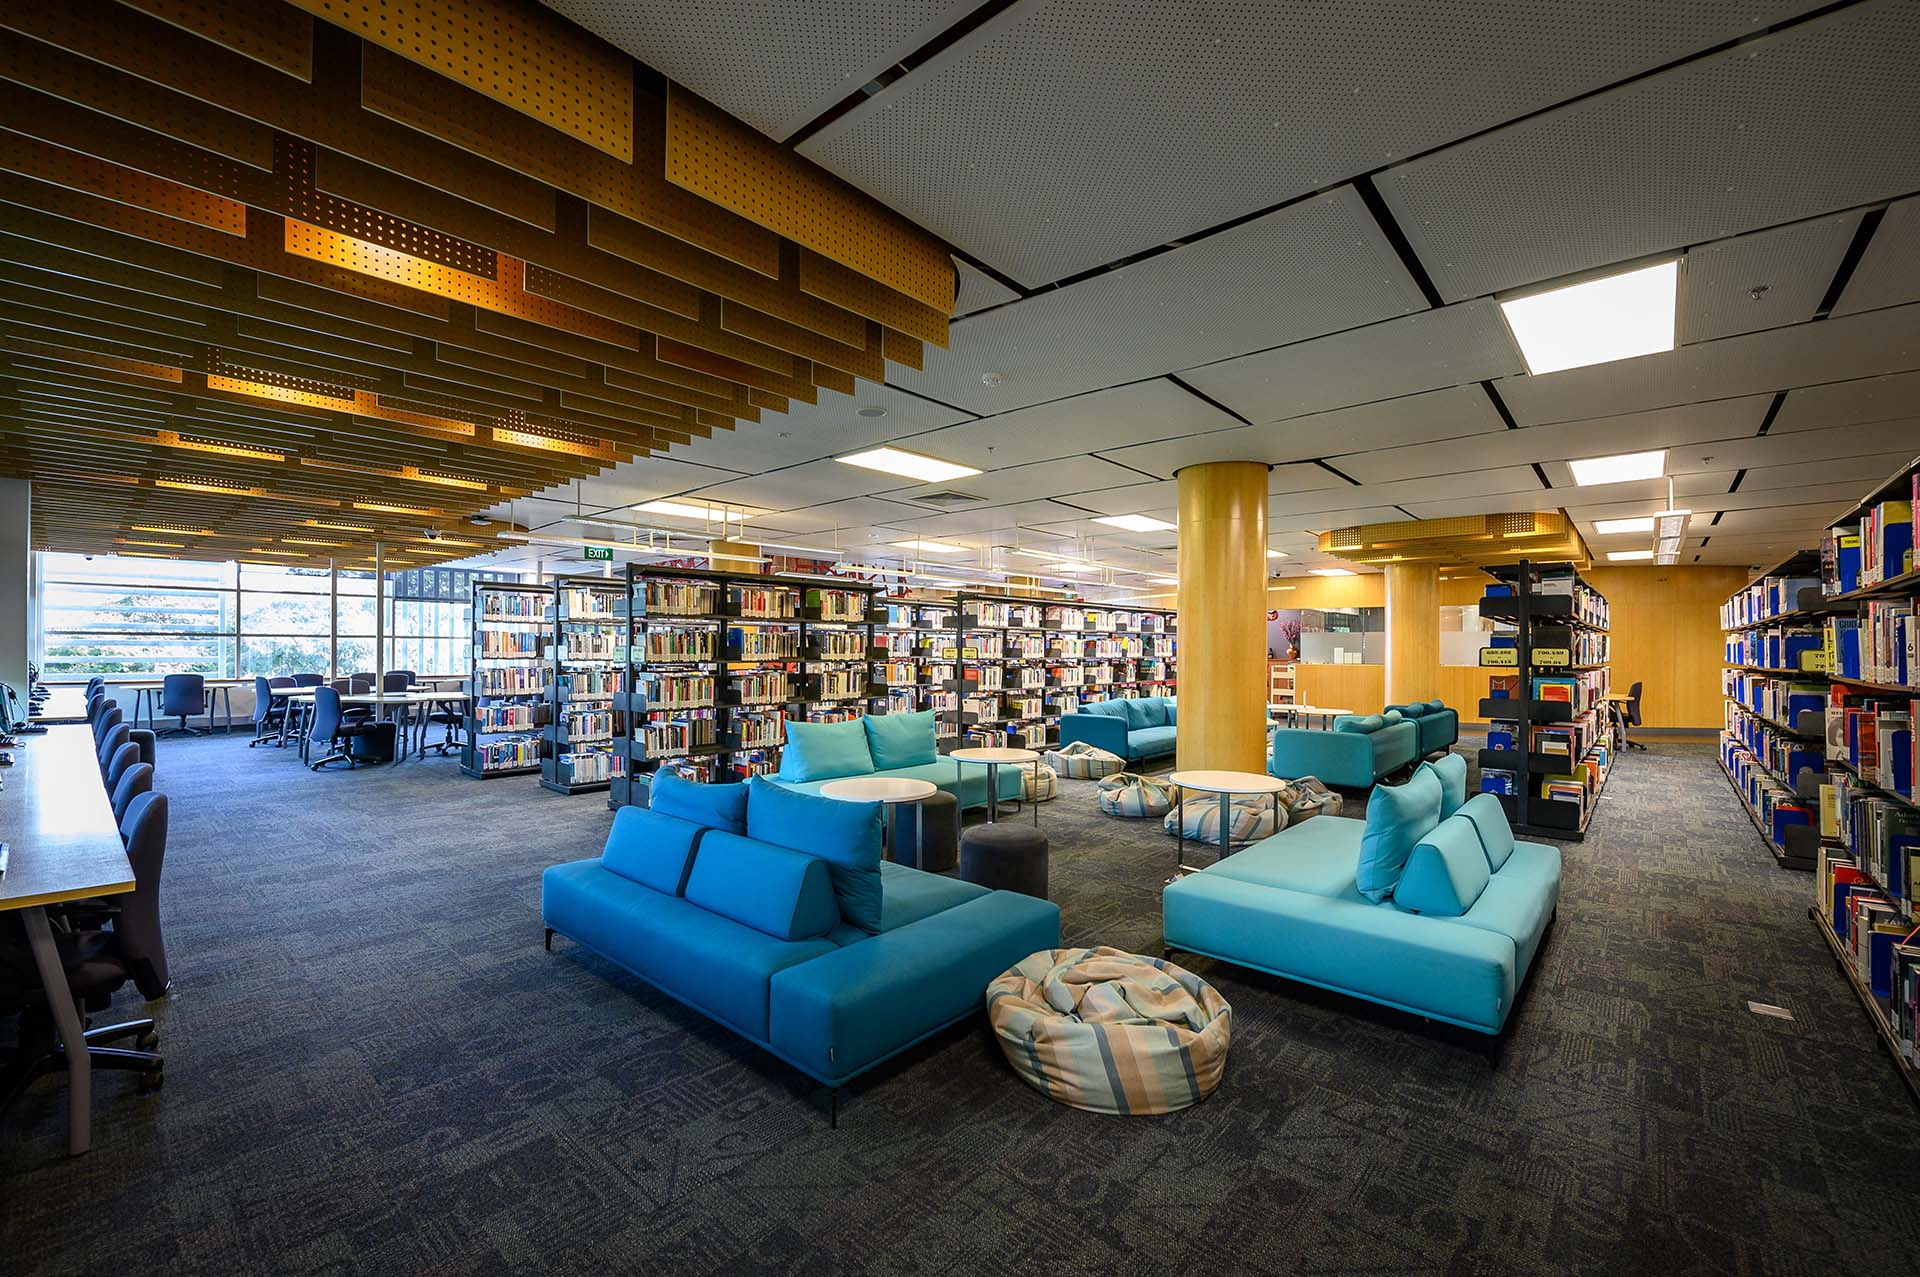 sgs beanland library